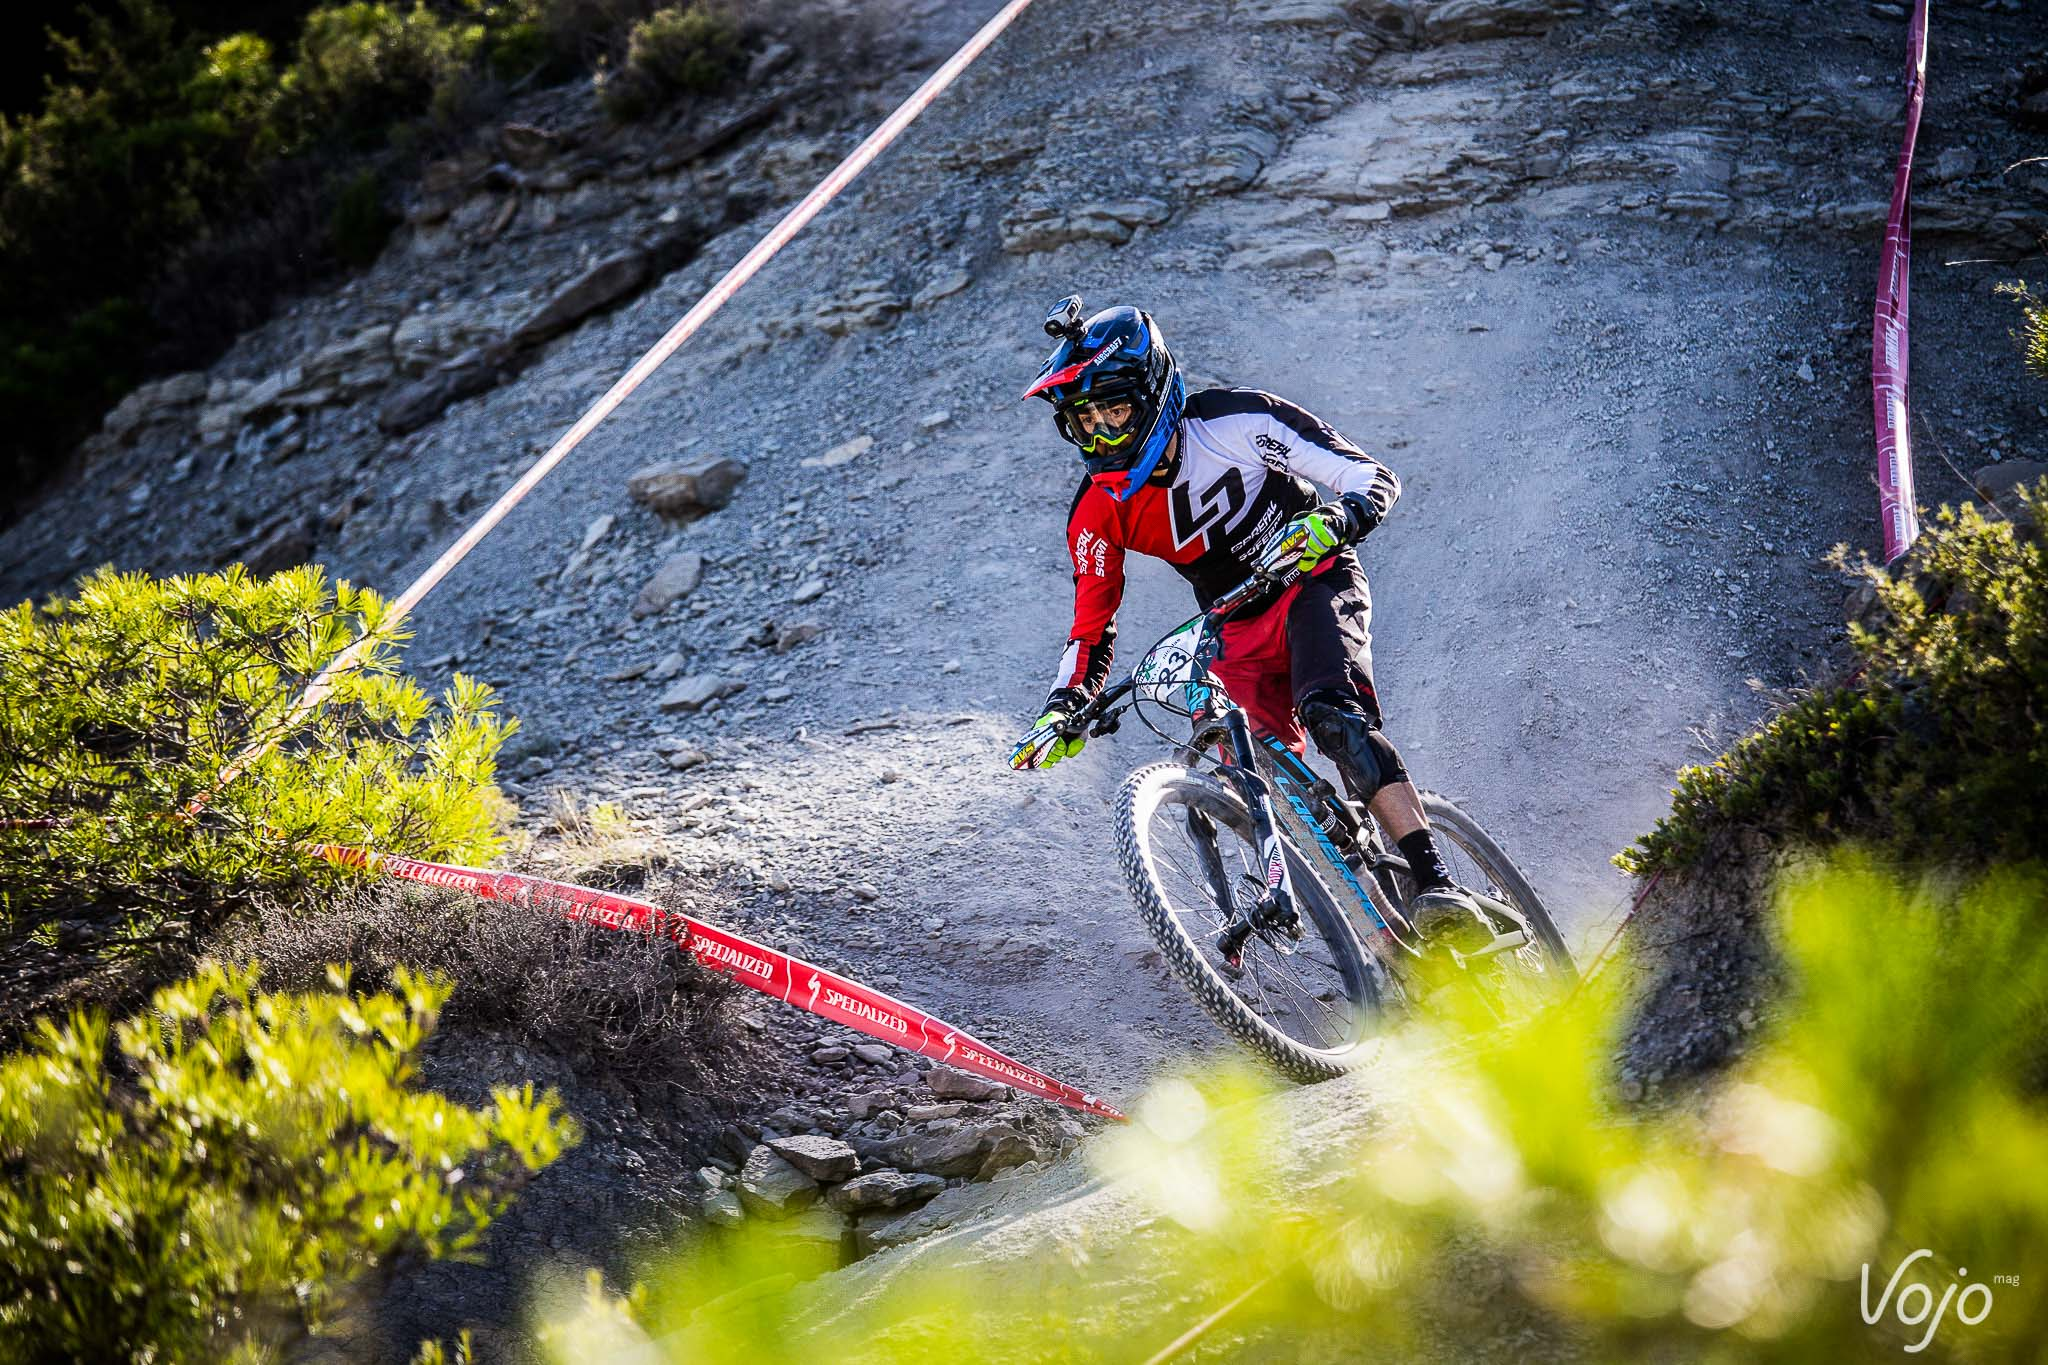 Enduro_World_Series_7_Spain_Ainsa_Zona_Zero_2015_Copyright_VojoMag-33